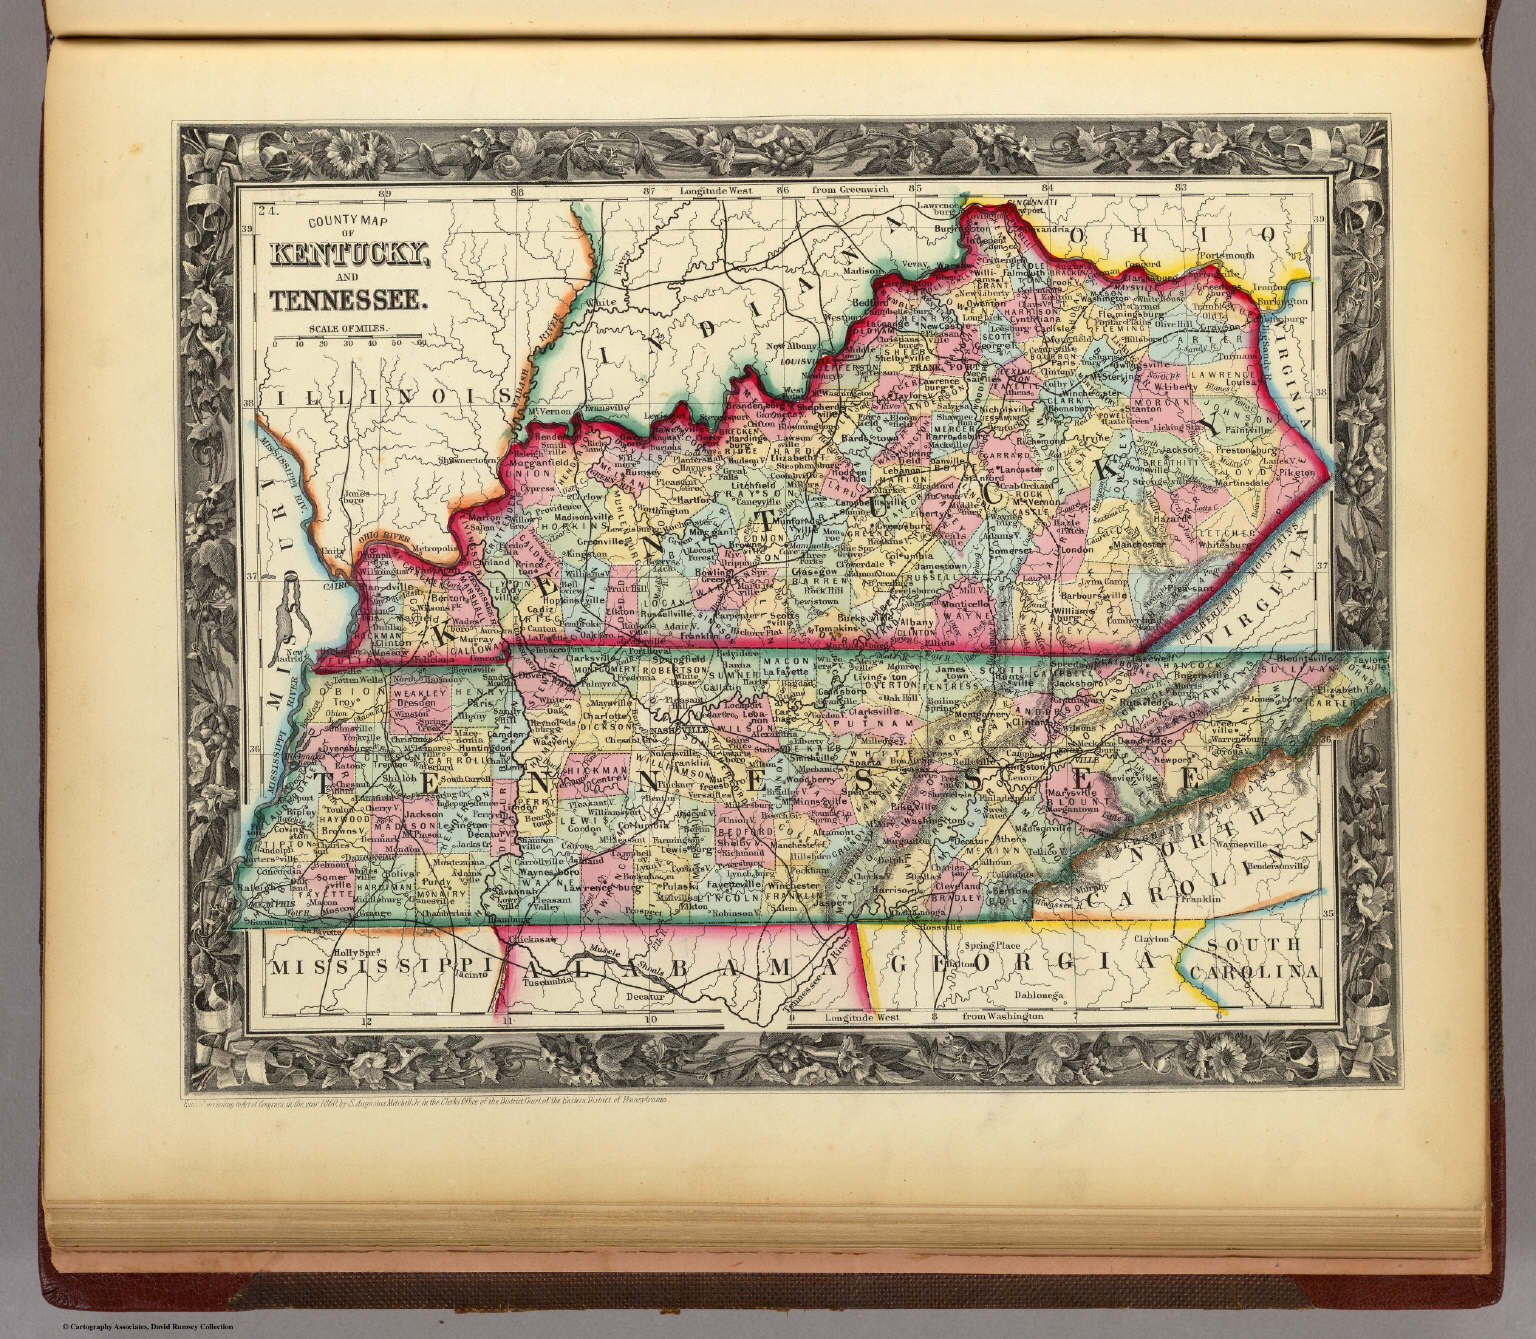 County Map Of Kentucky And Tennessee David Rumsey Historical Map